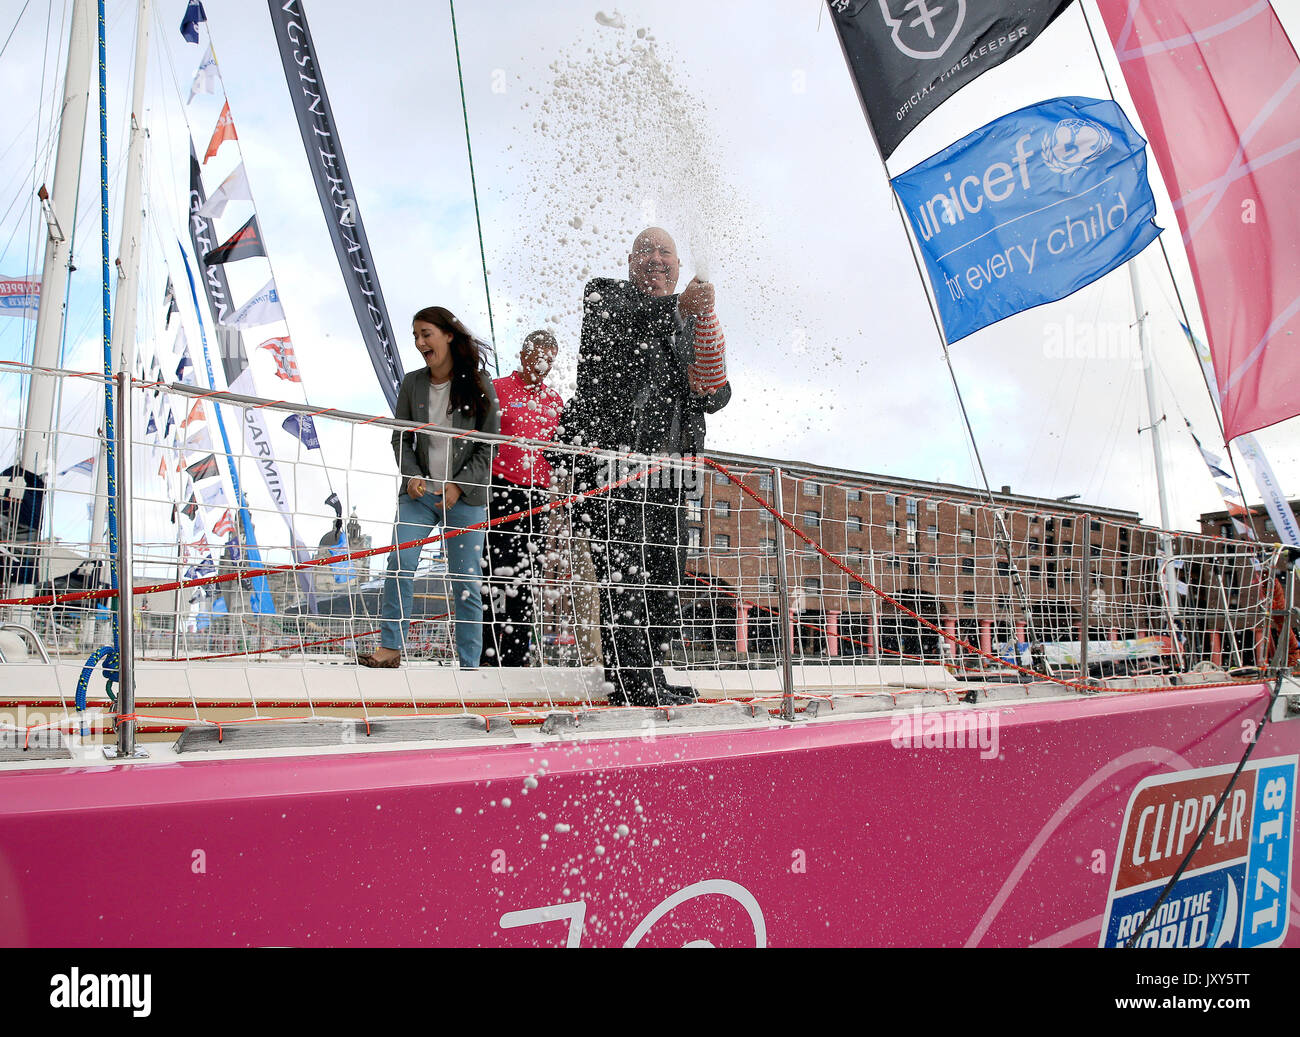 Lord Mayor of Liverpool Joe Anderson sprays champagne during the naming ceremony of Liverpool 2018 at Albert Docks, Liverpool ahead of this Sunday's start of the Clipper Round the World yacht race. - Stock Image